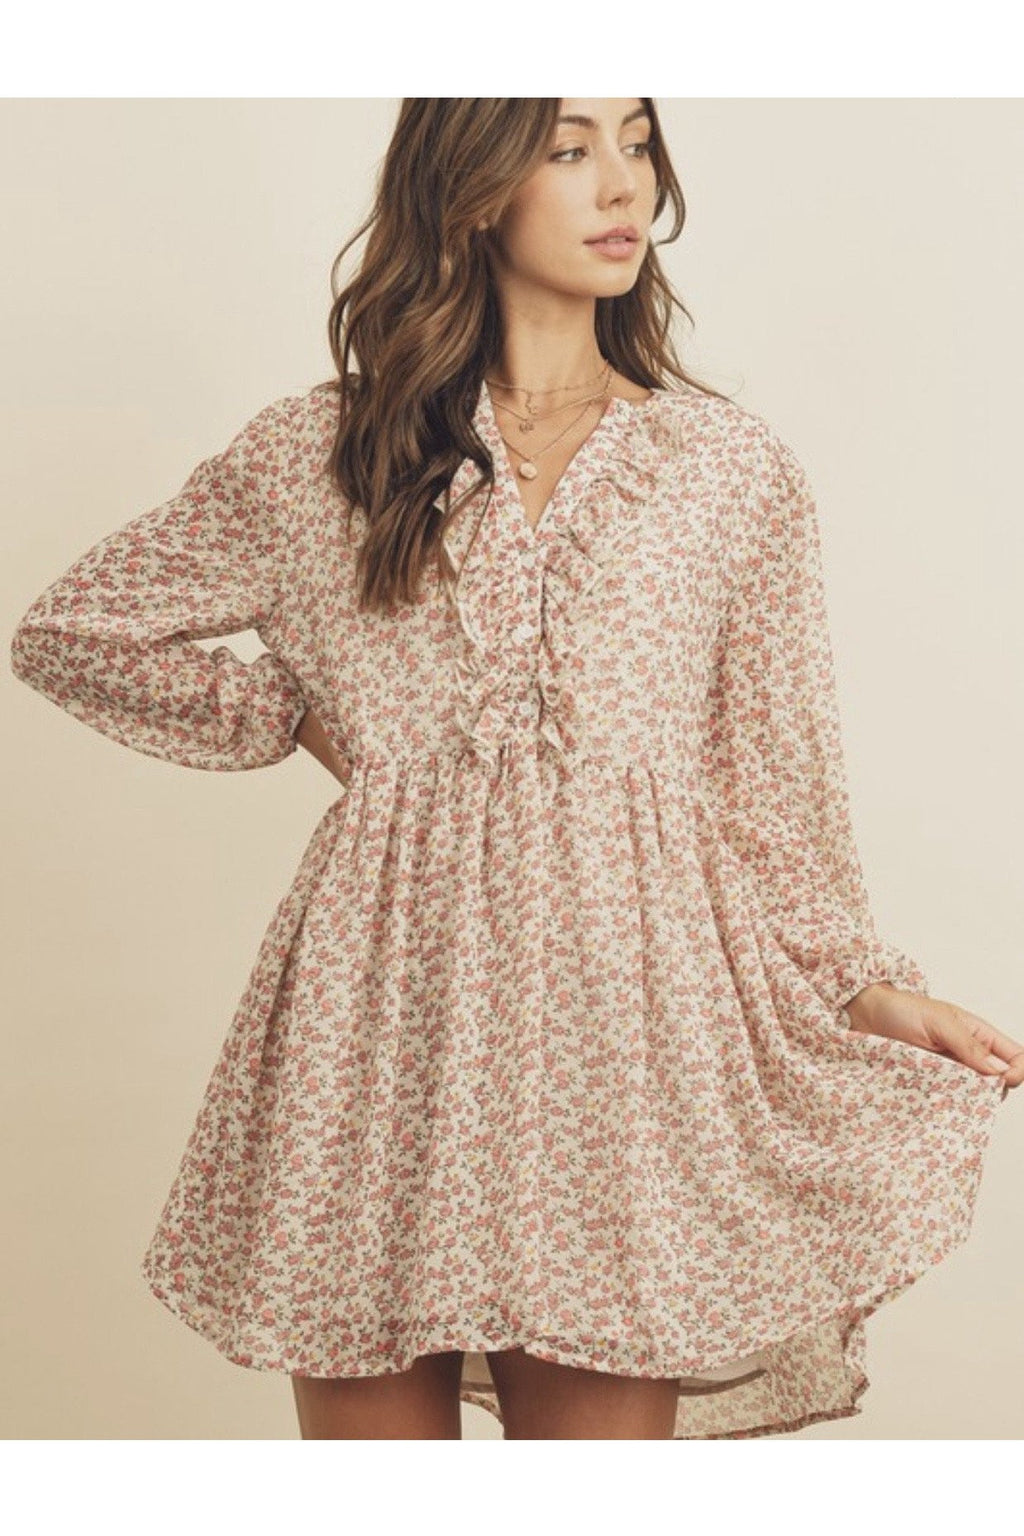 Persephone Floral Swing Dress $58